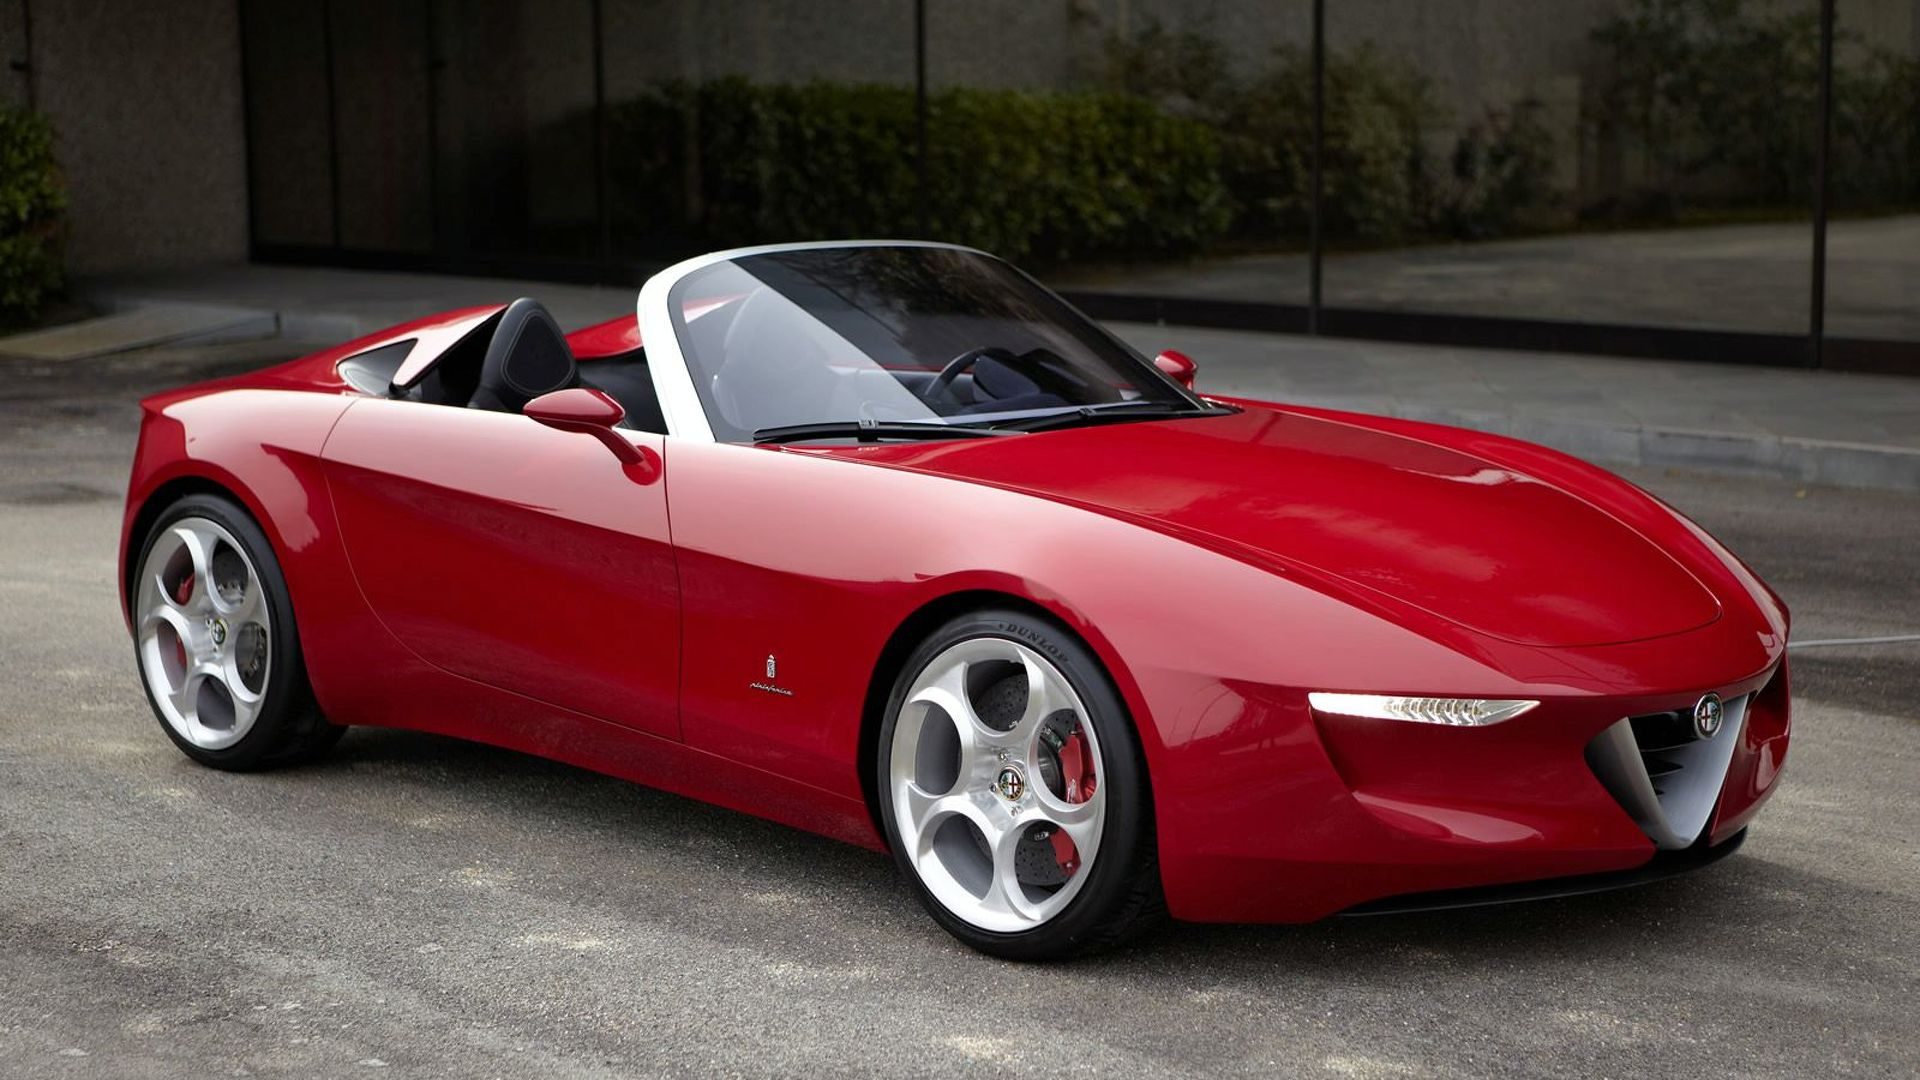 Beijing Automotive interested in Pininfarina - report